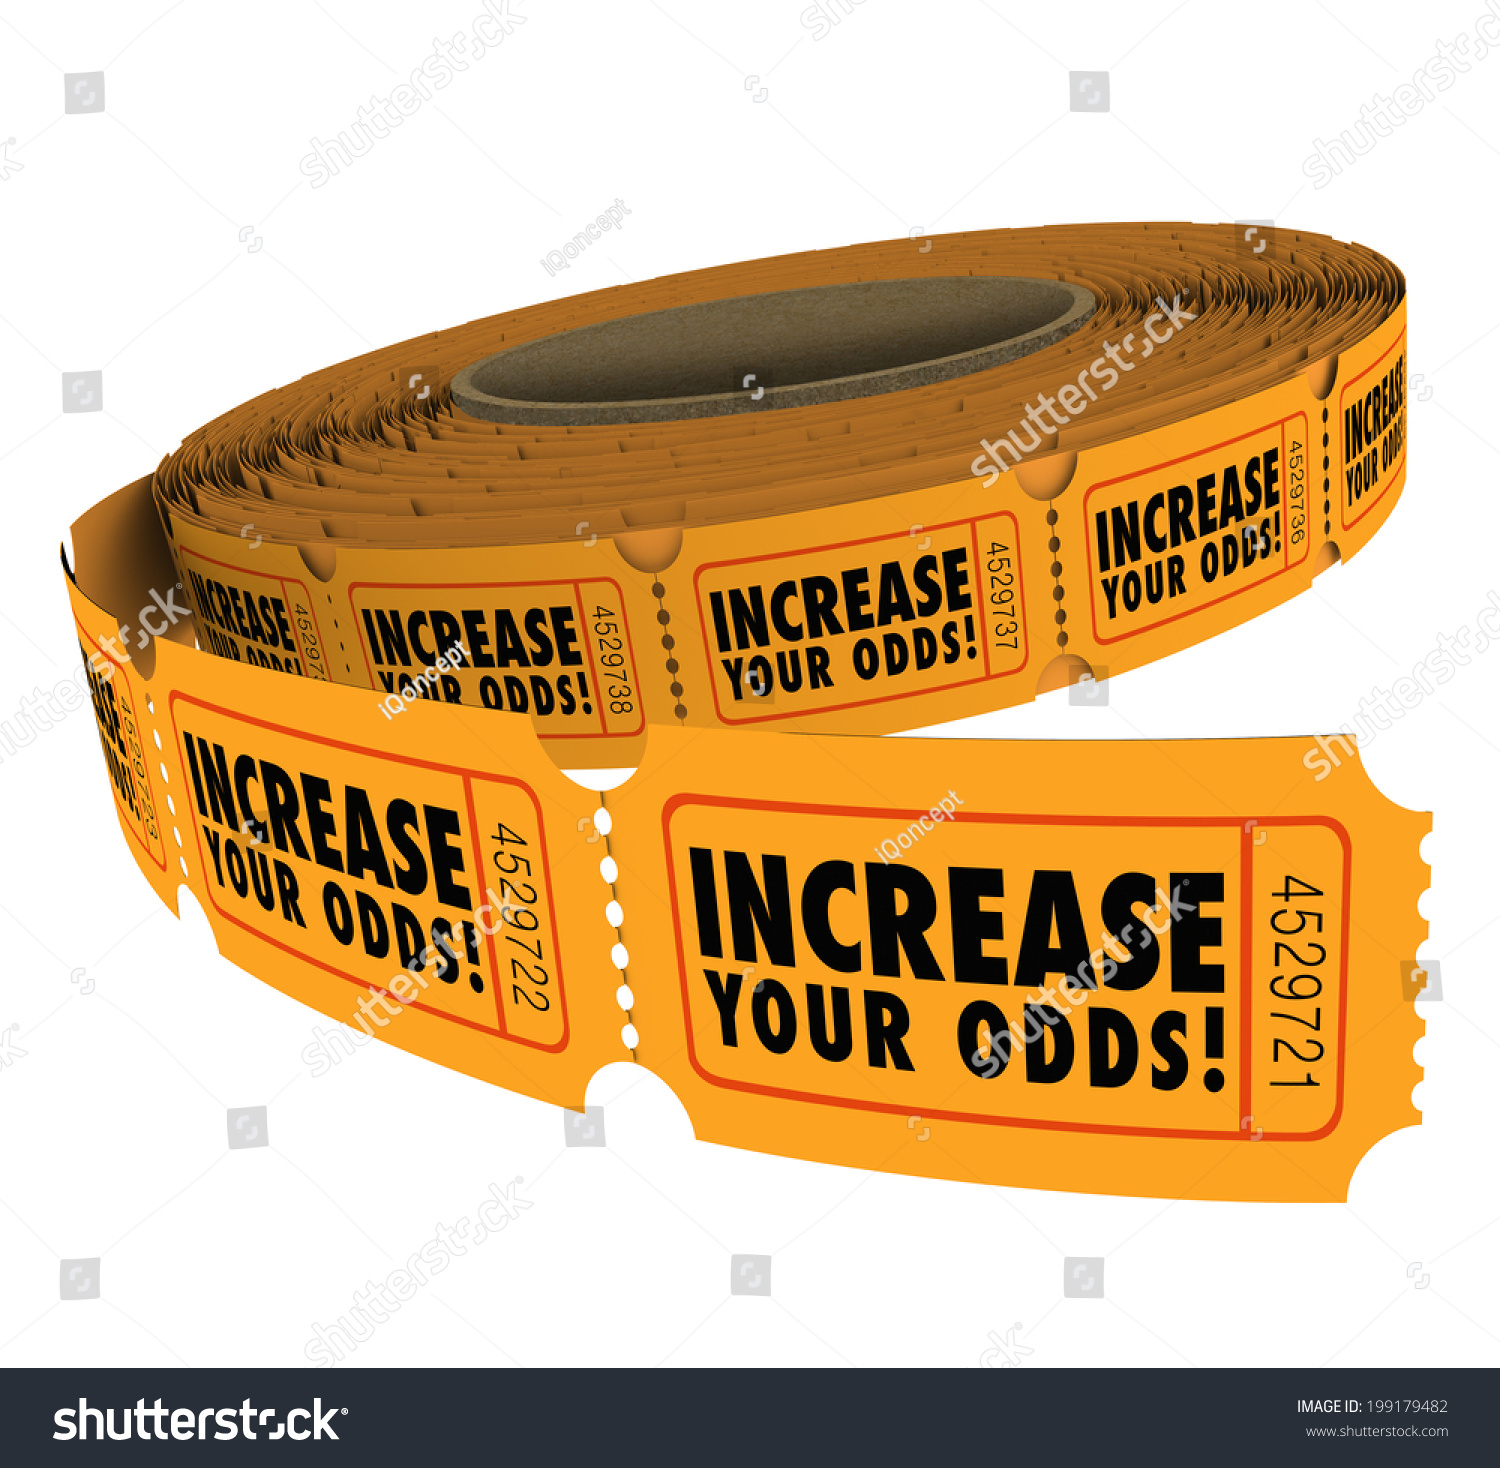 increase your odds words raffle lottery stock illustration increase your odds words raffle lottery tickets buy more enter drawing to win cash